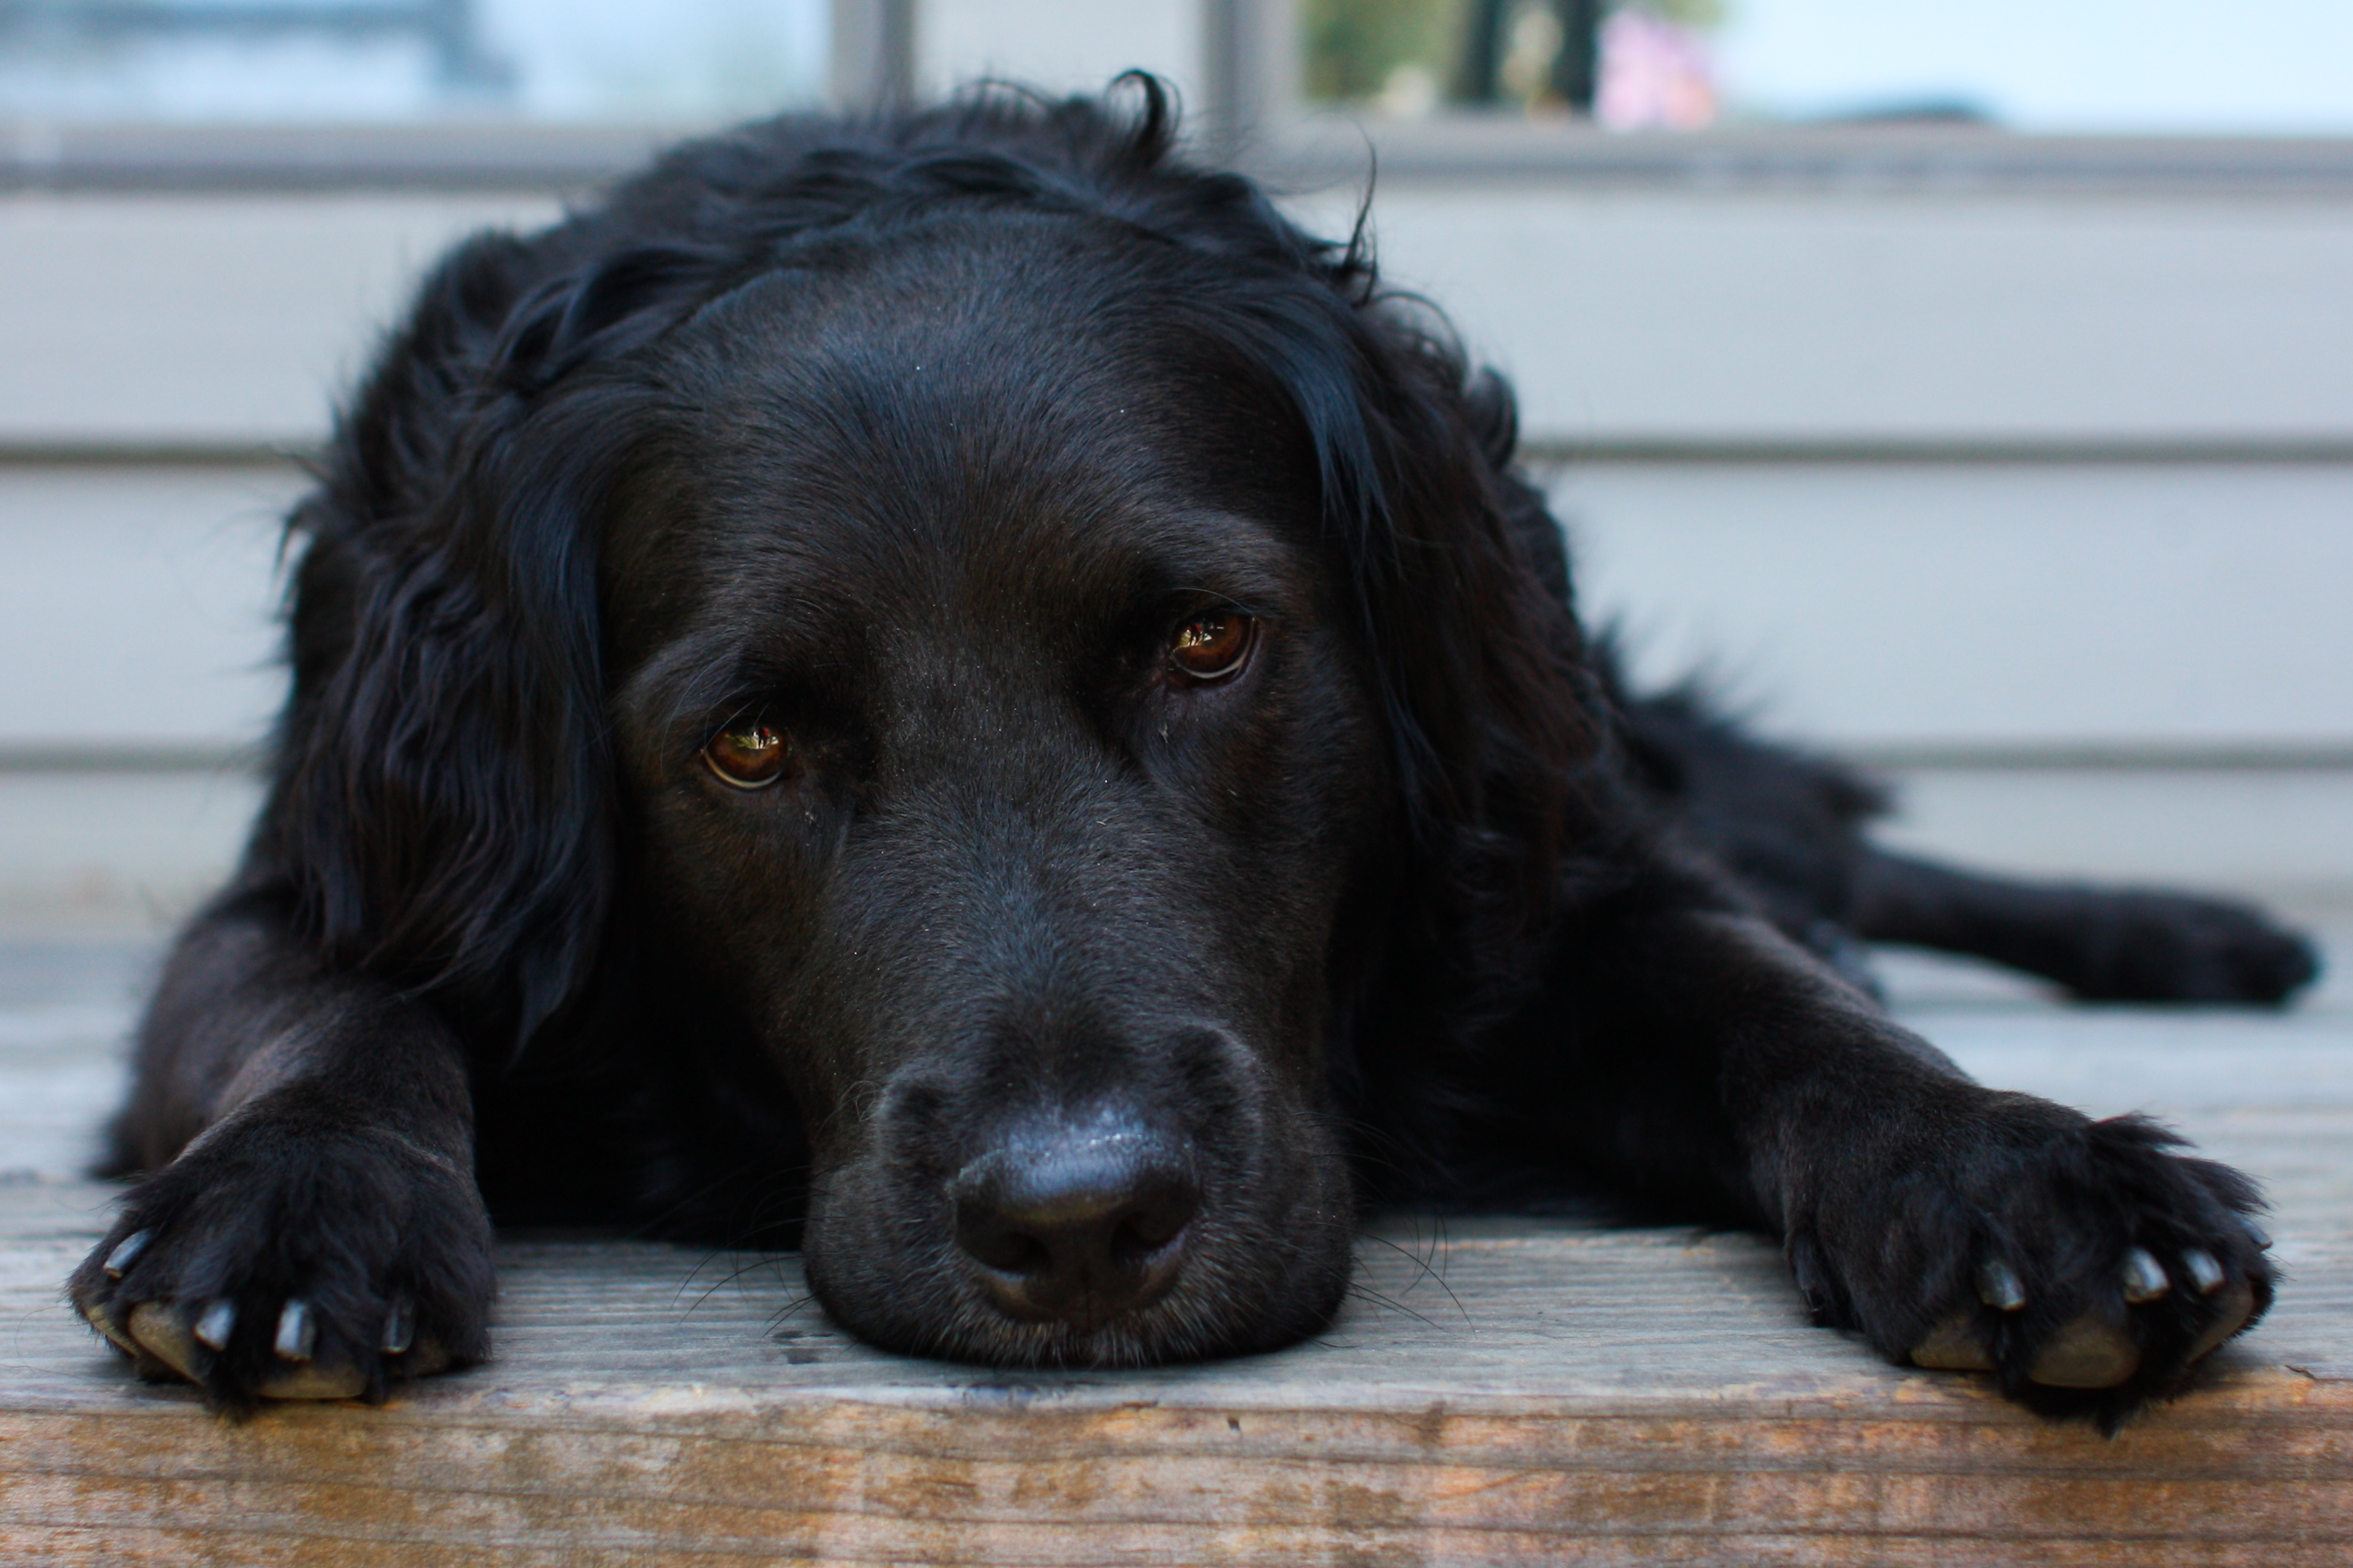 File:Reclining black dog.jpg - Wikimedia Commons